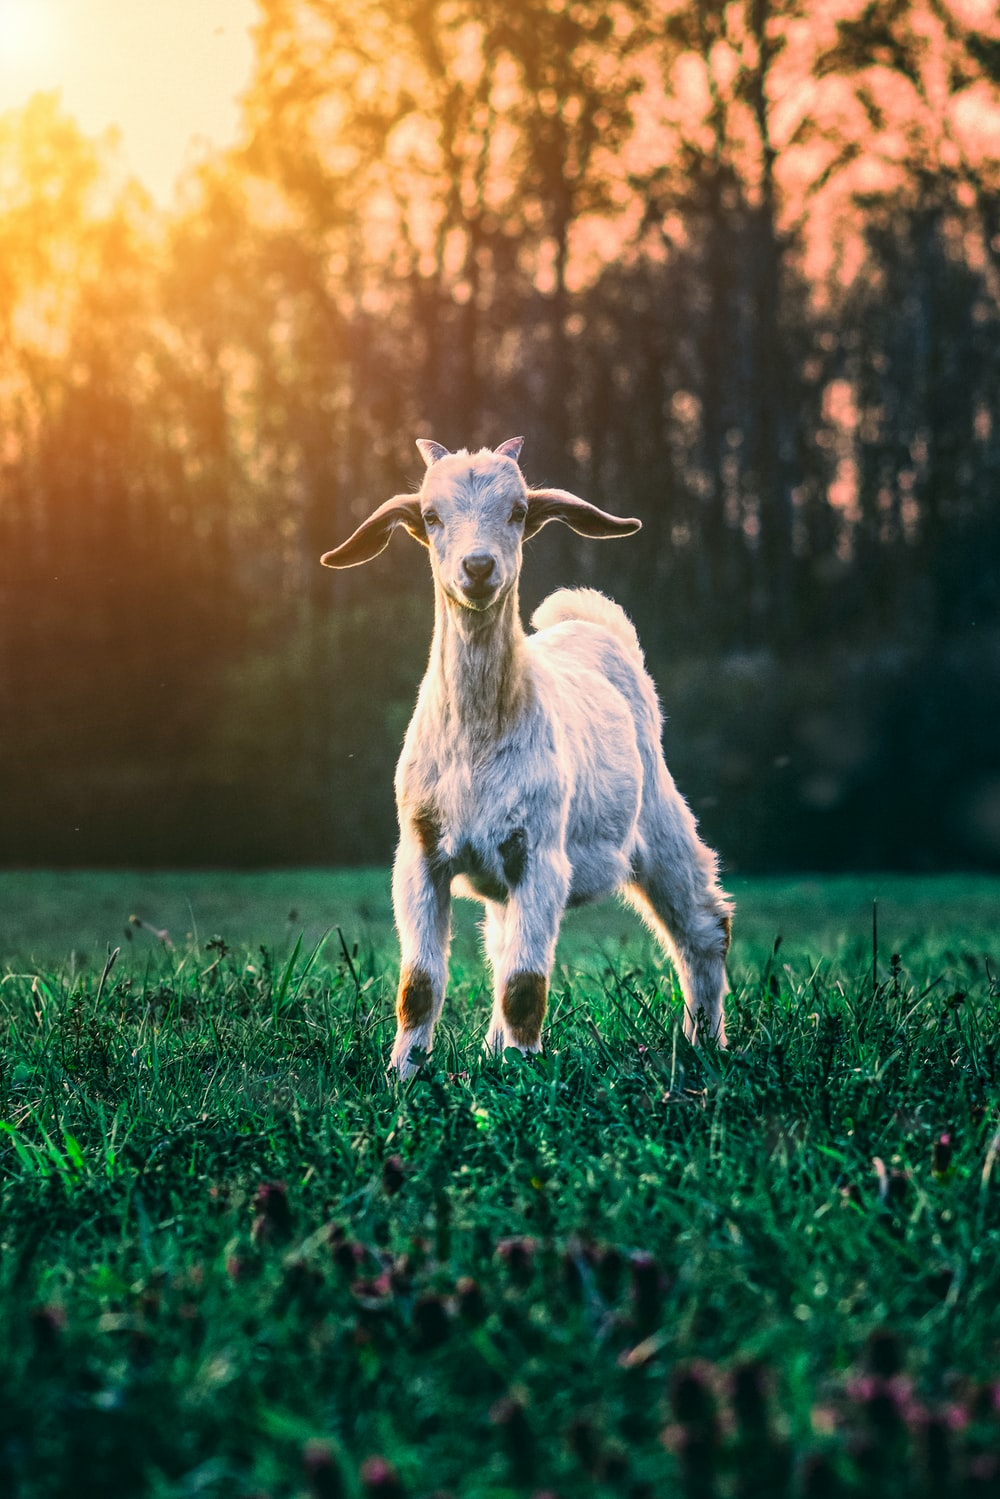 white goat on green grass field during daytime